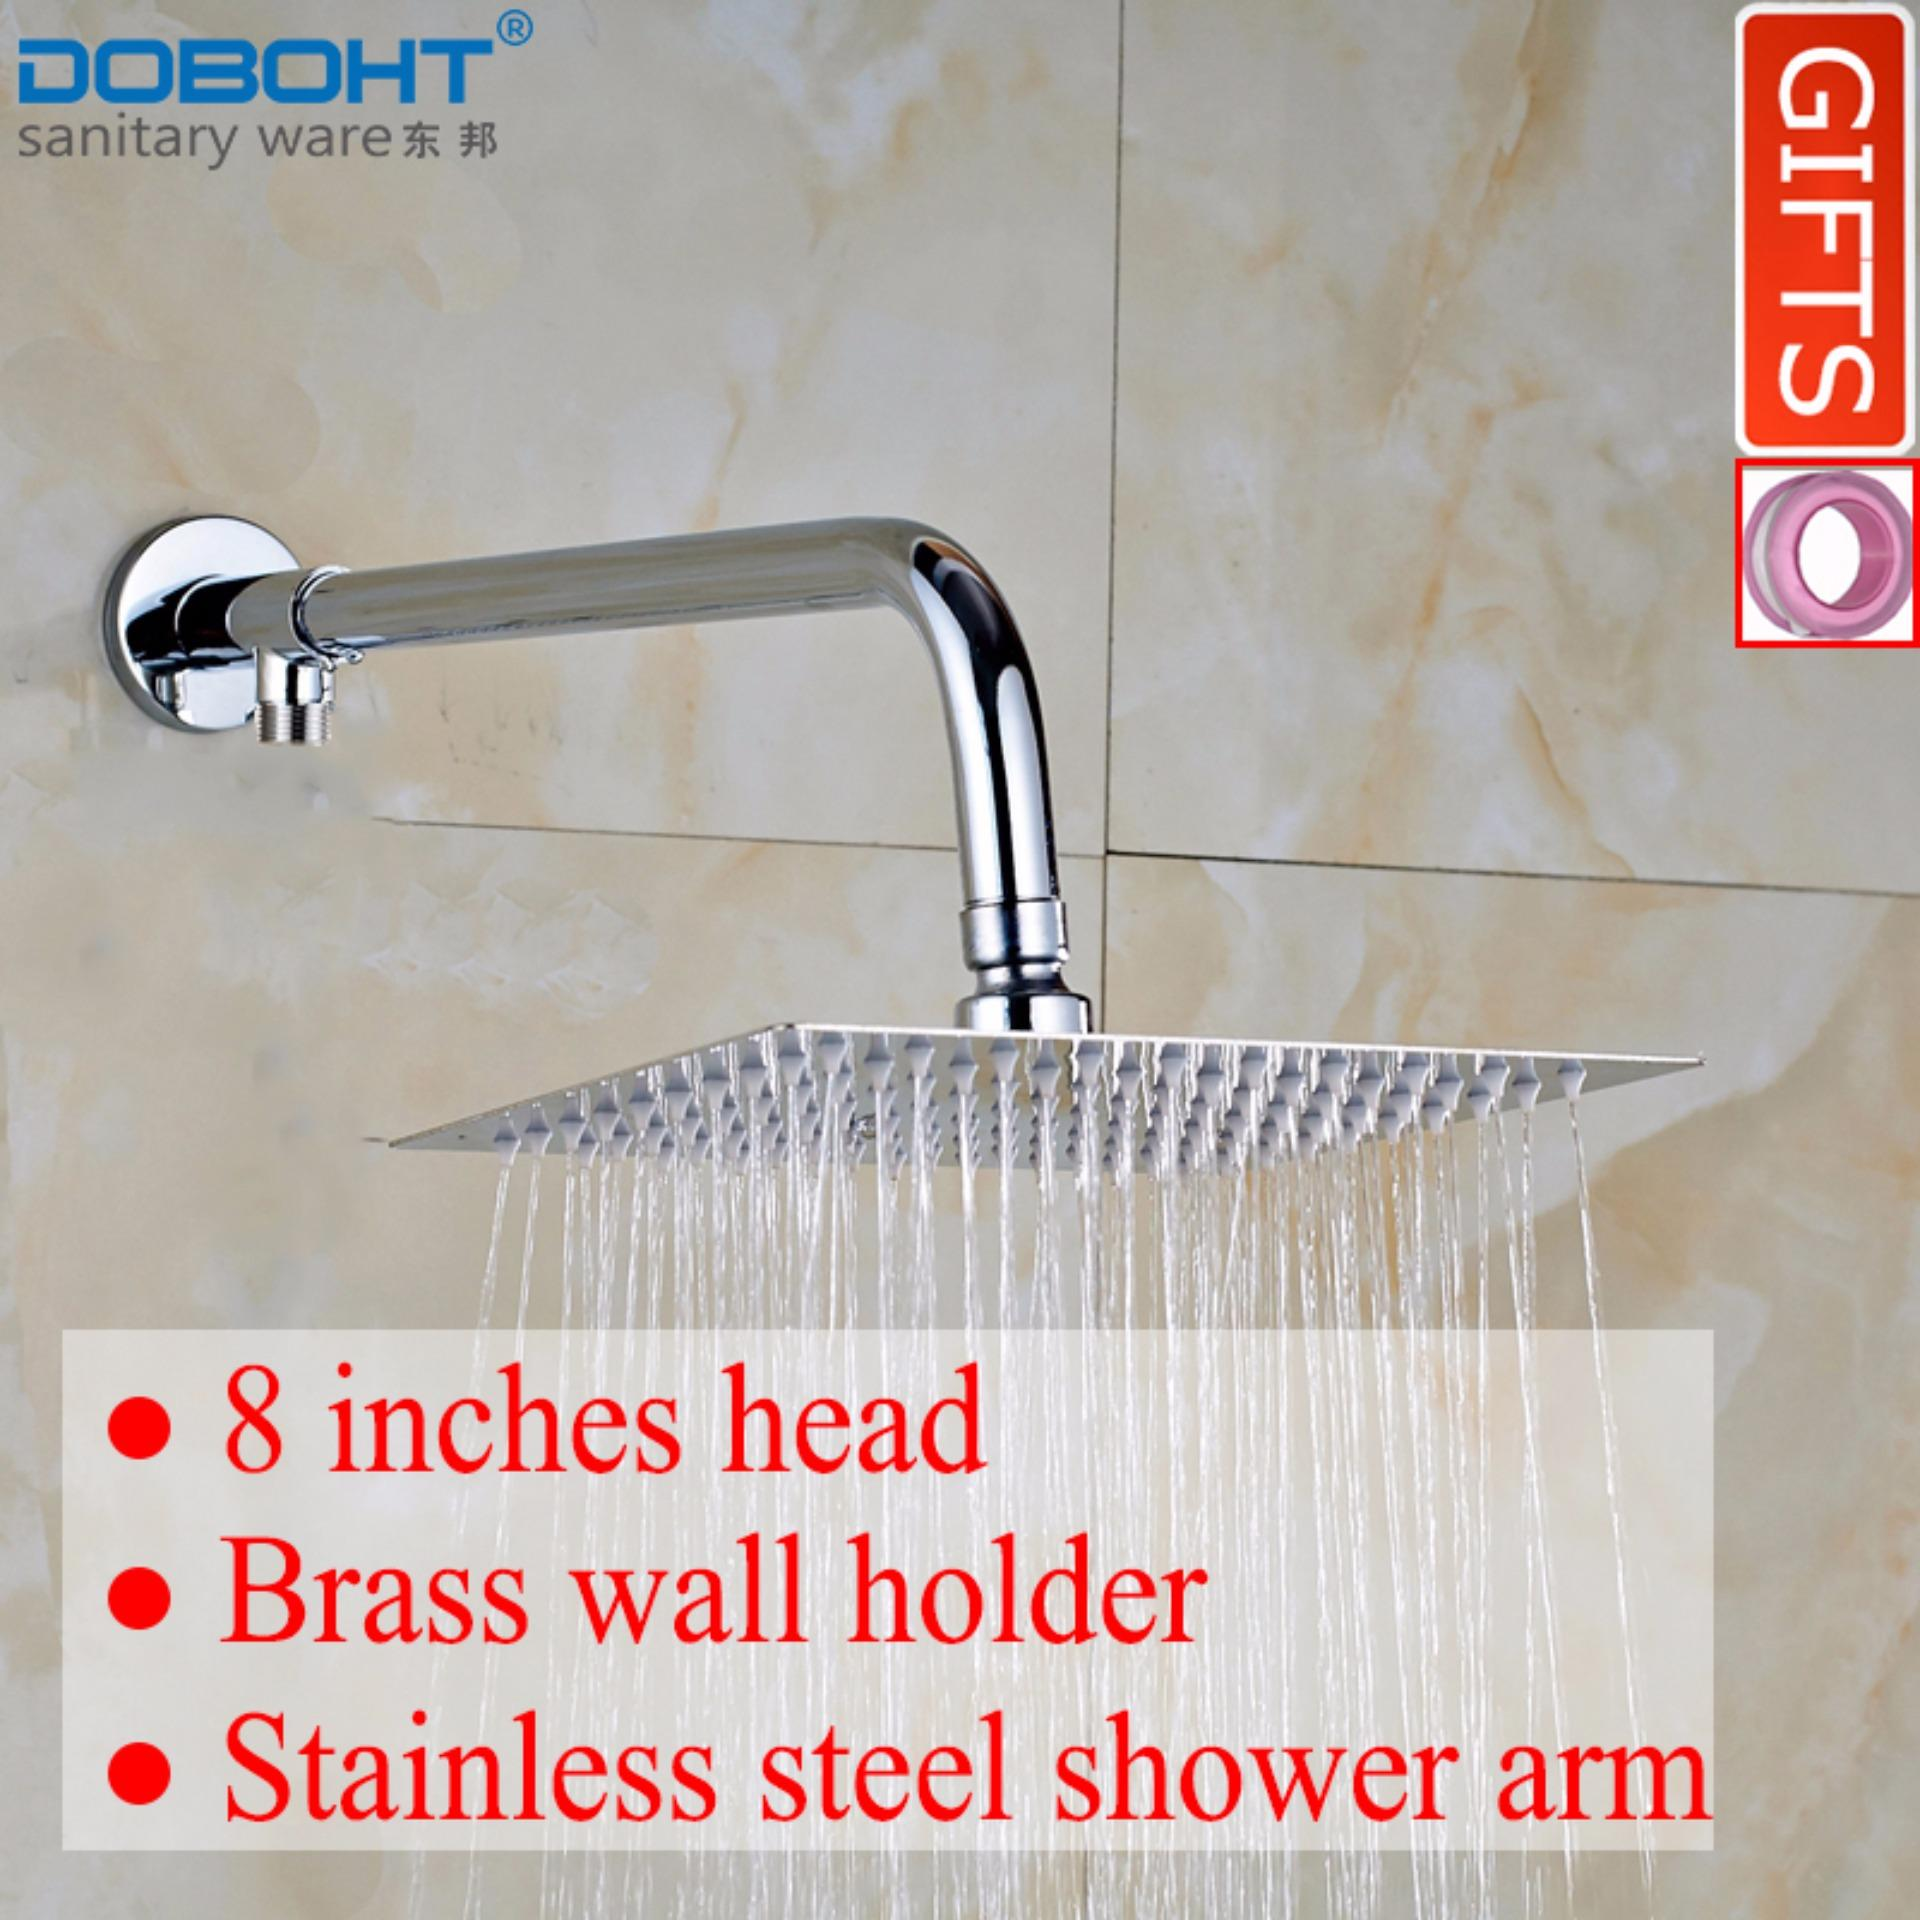 Doboht Bathroom Home Shower Set With 8 Inch Stainless Steel Shower Head And Shower Arms Chrome Intl Free Shipping